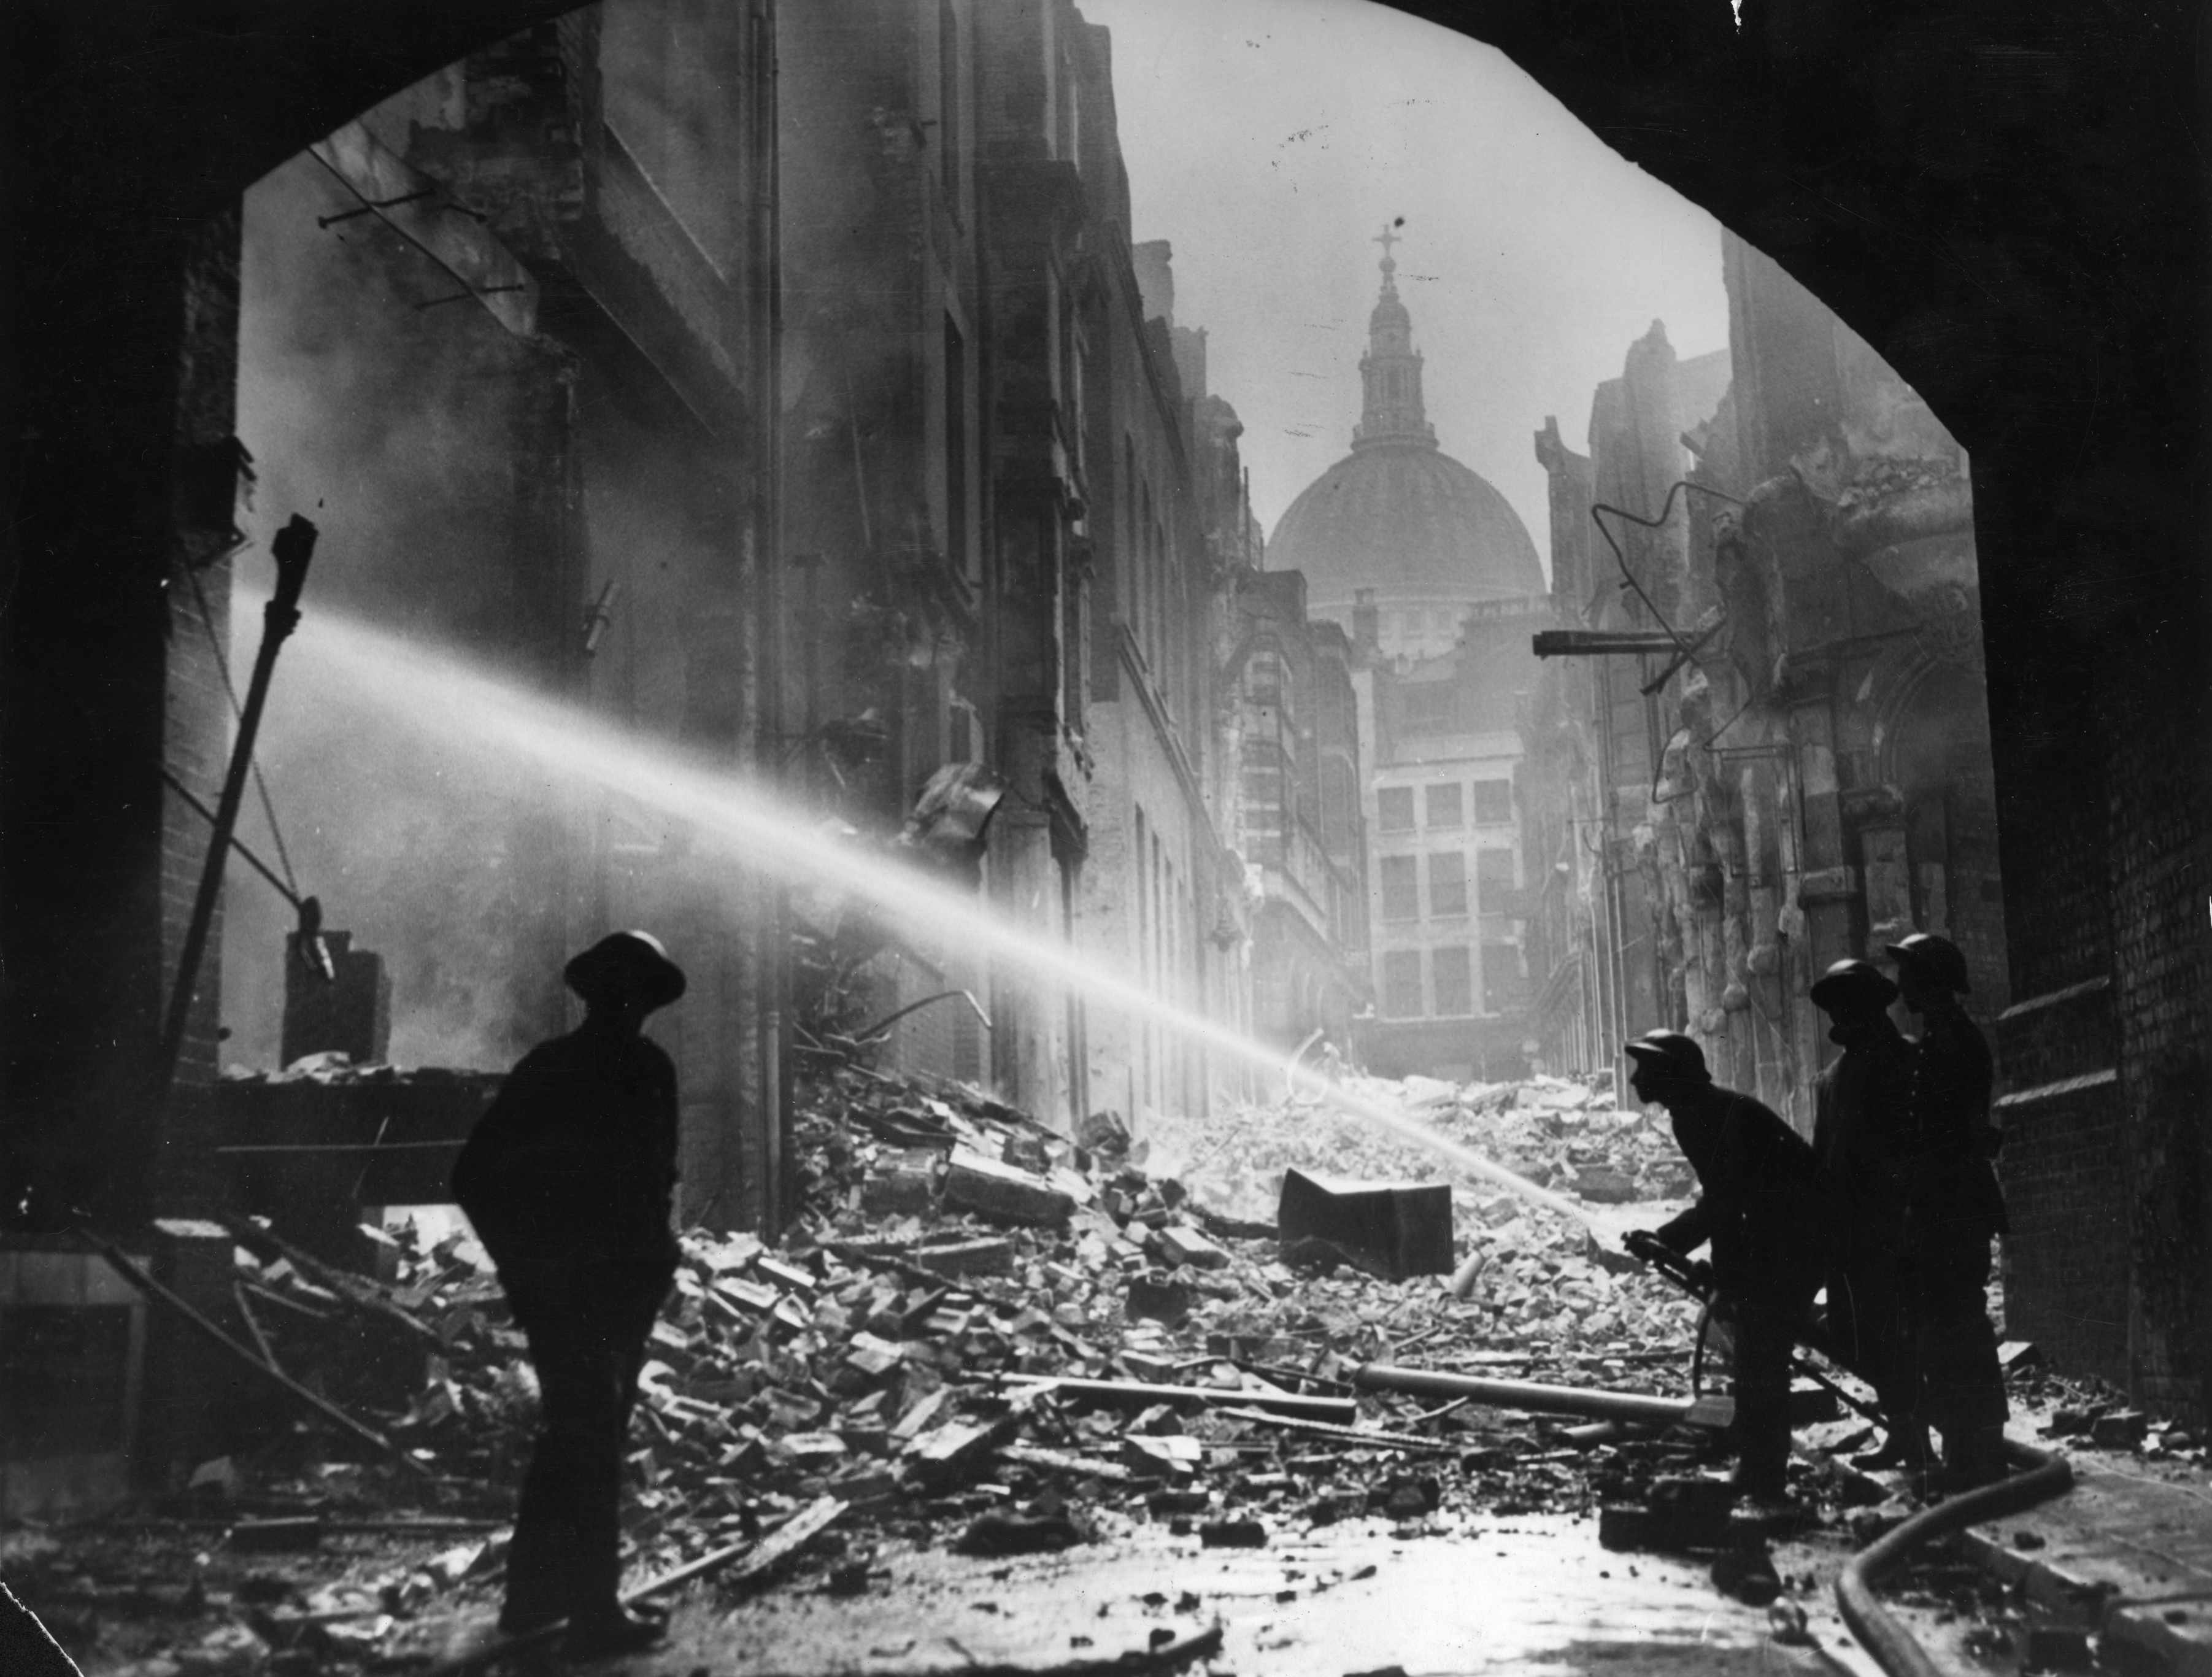 AFS firemen tackle a blitz fire amidst the rubble surrounding St Paul's Cathedral, London. (Photo by Fox Photos/Getty Images)